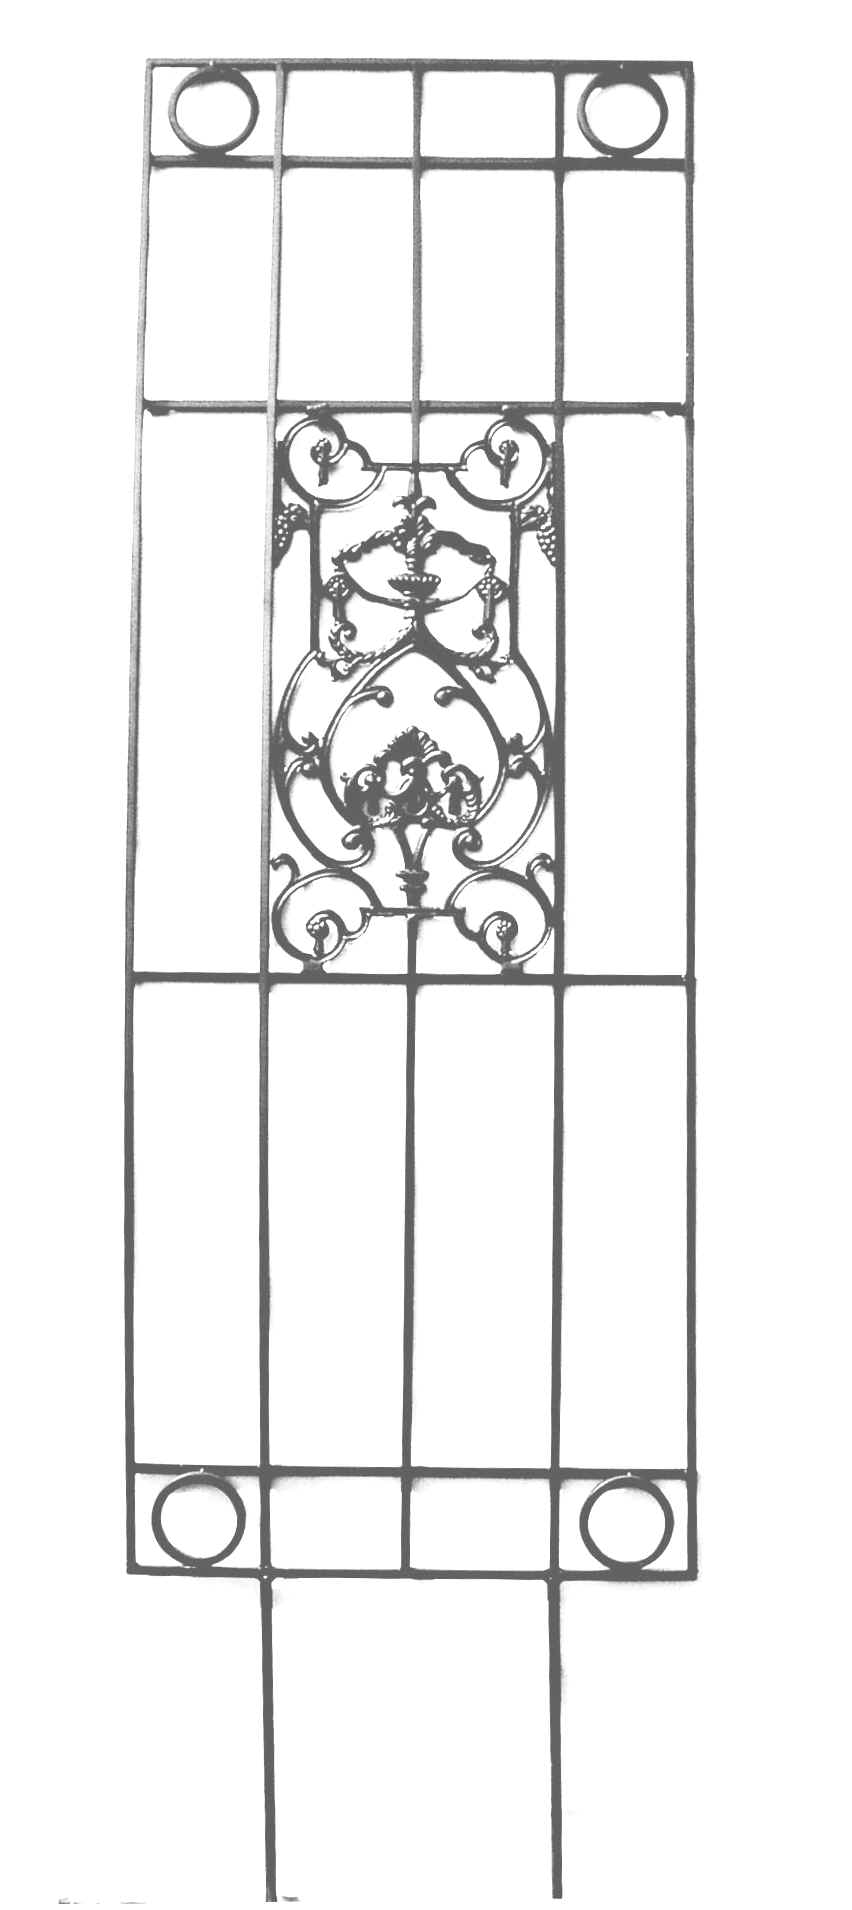 Charmant Trellis Wrought Iron Steel Garden ...